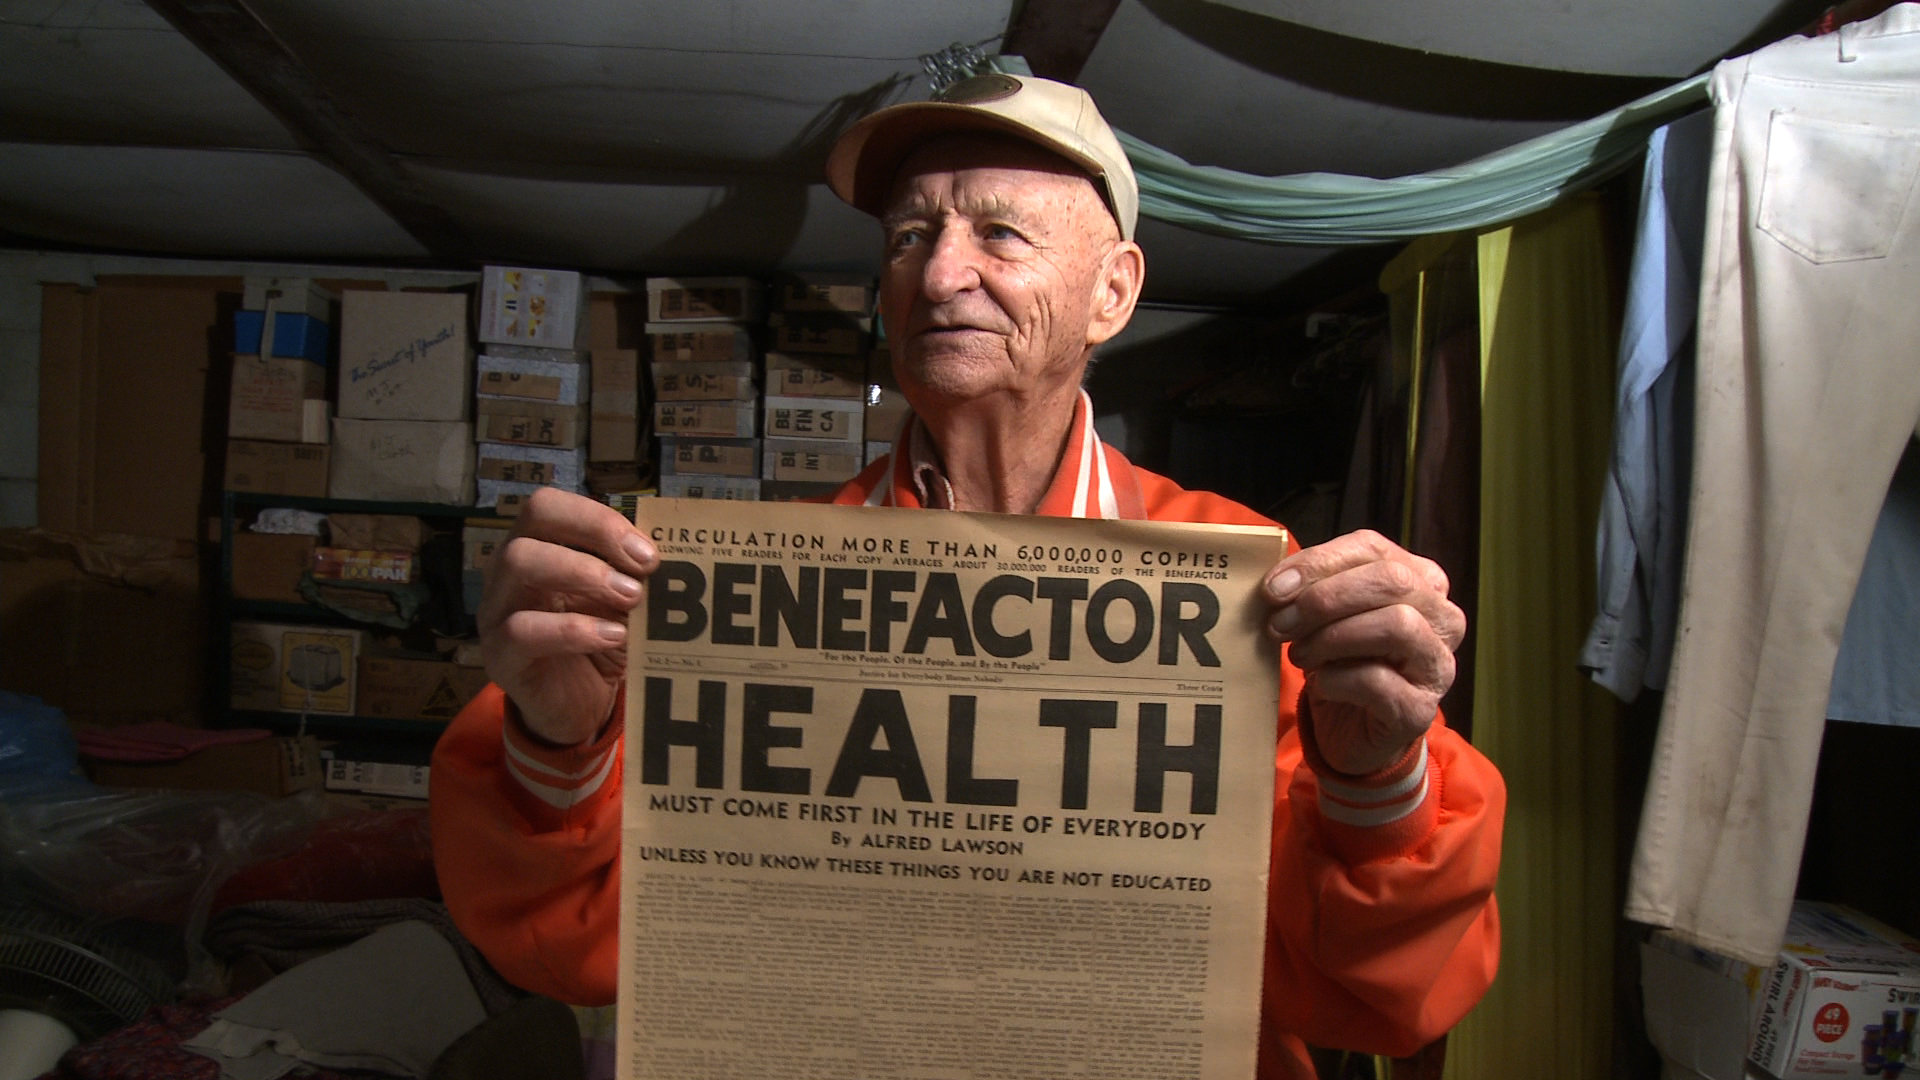 Merle holding an issue of Lawson's paper - The Benefactor